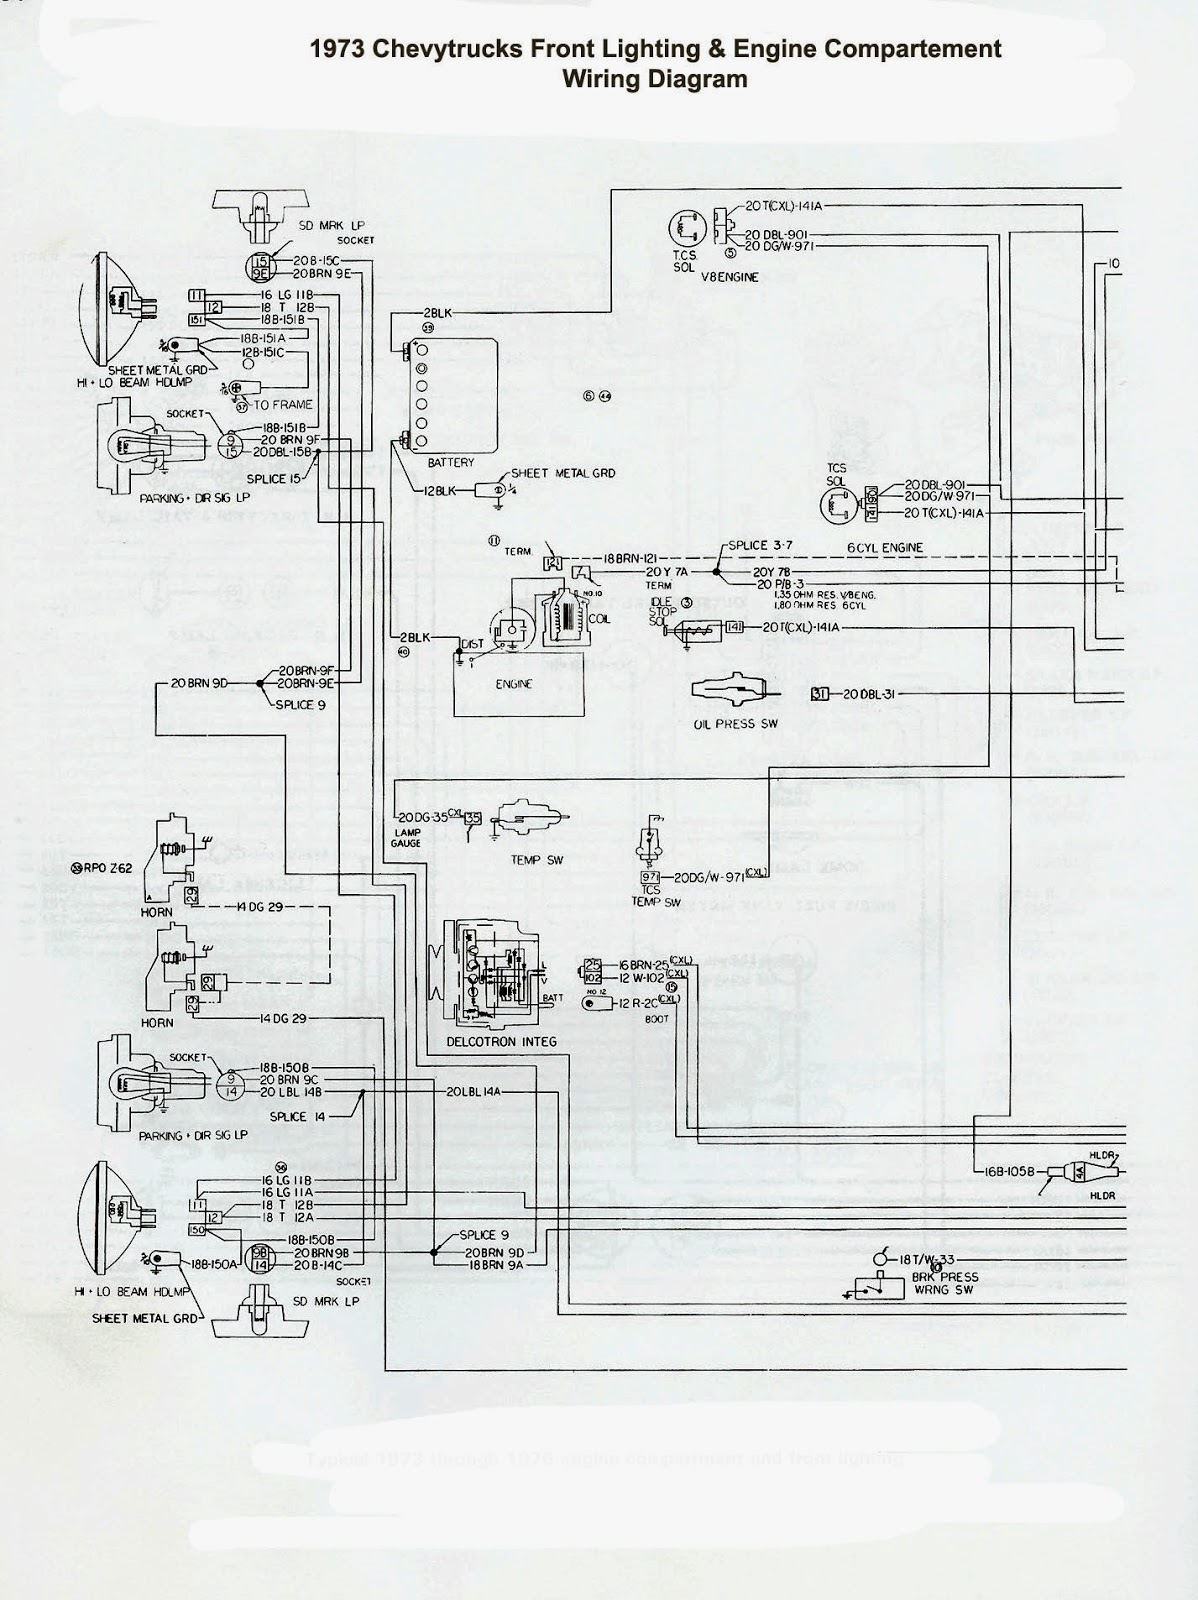 chevytruks.+engine+n+frontlight73 76_eng_frt_light+copy july 2014 electrical winding wiring diagrams ford 3000 electrical wiring diagram at mifinder.co